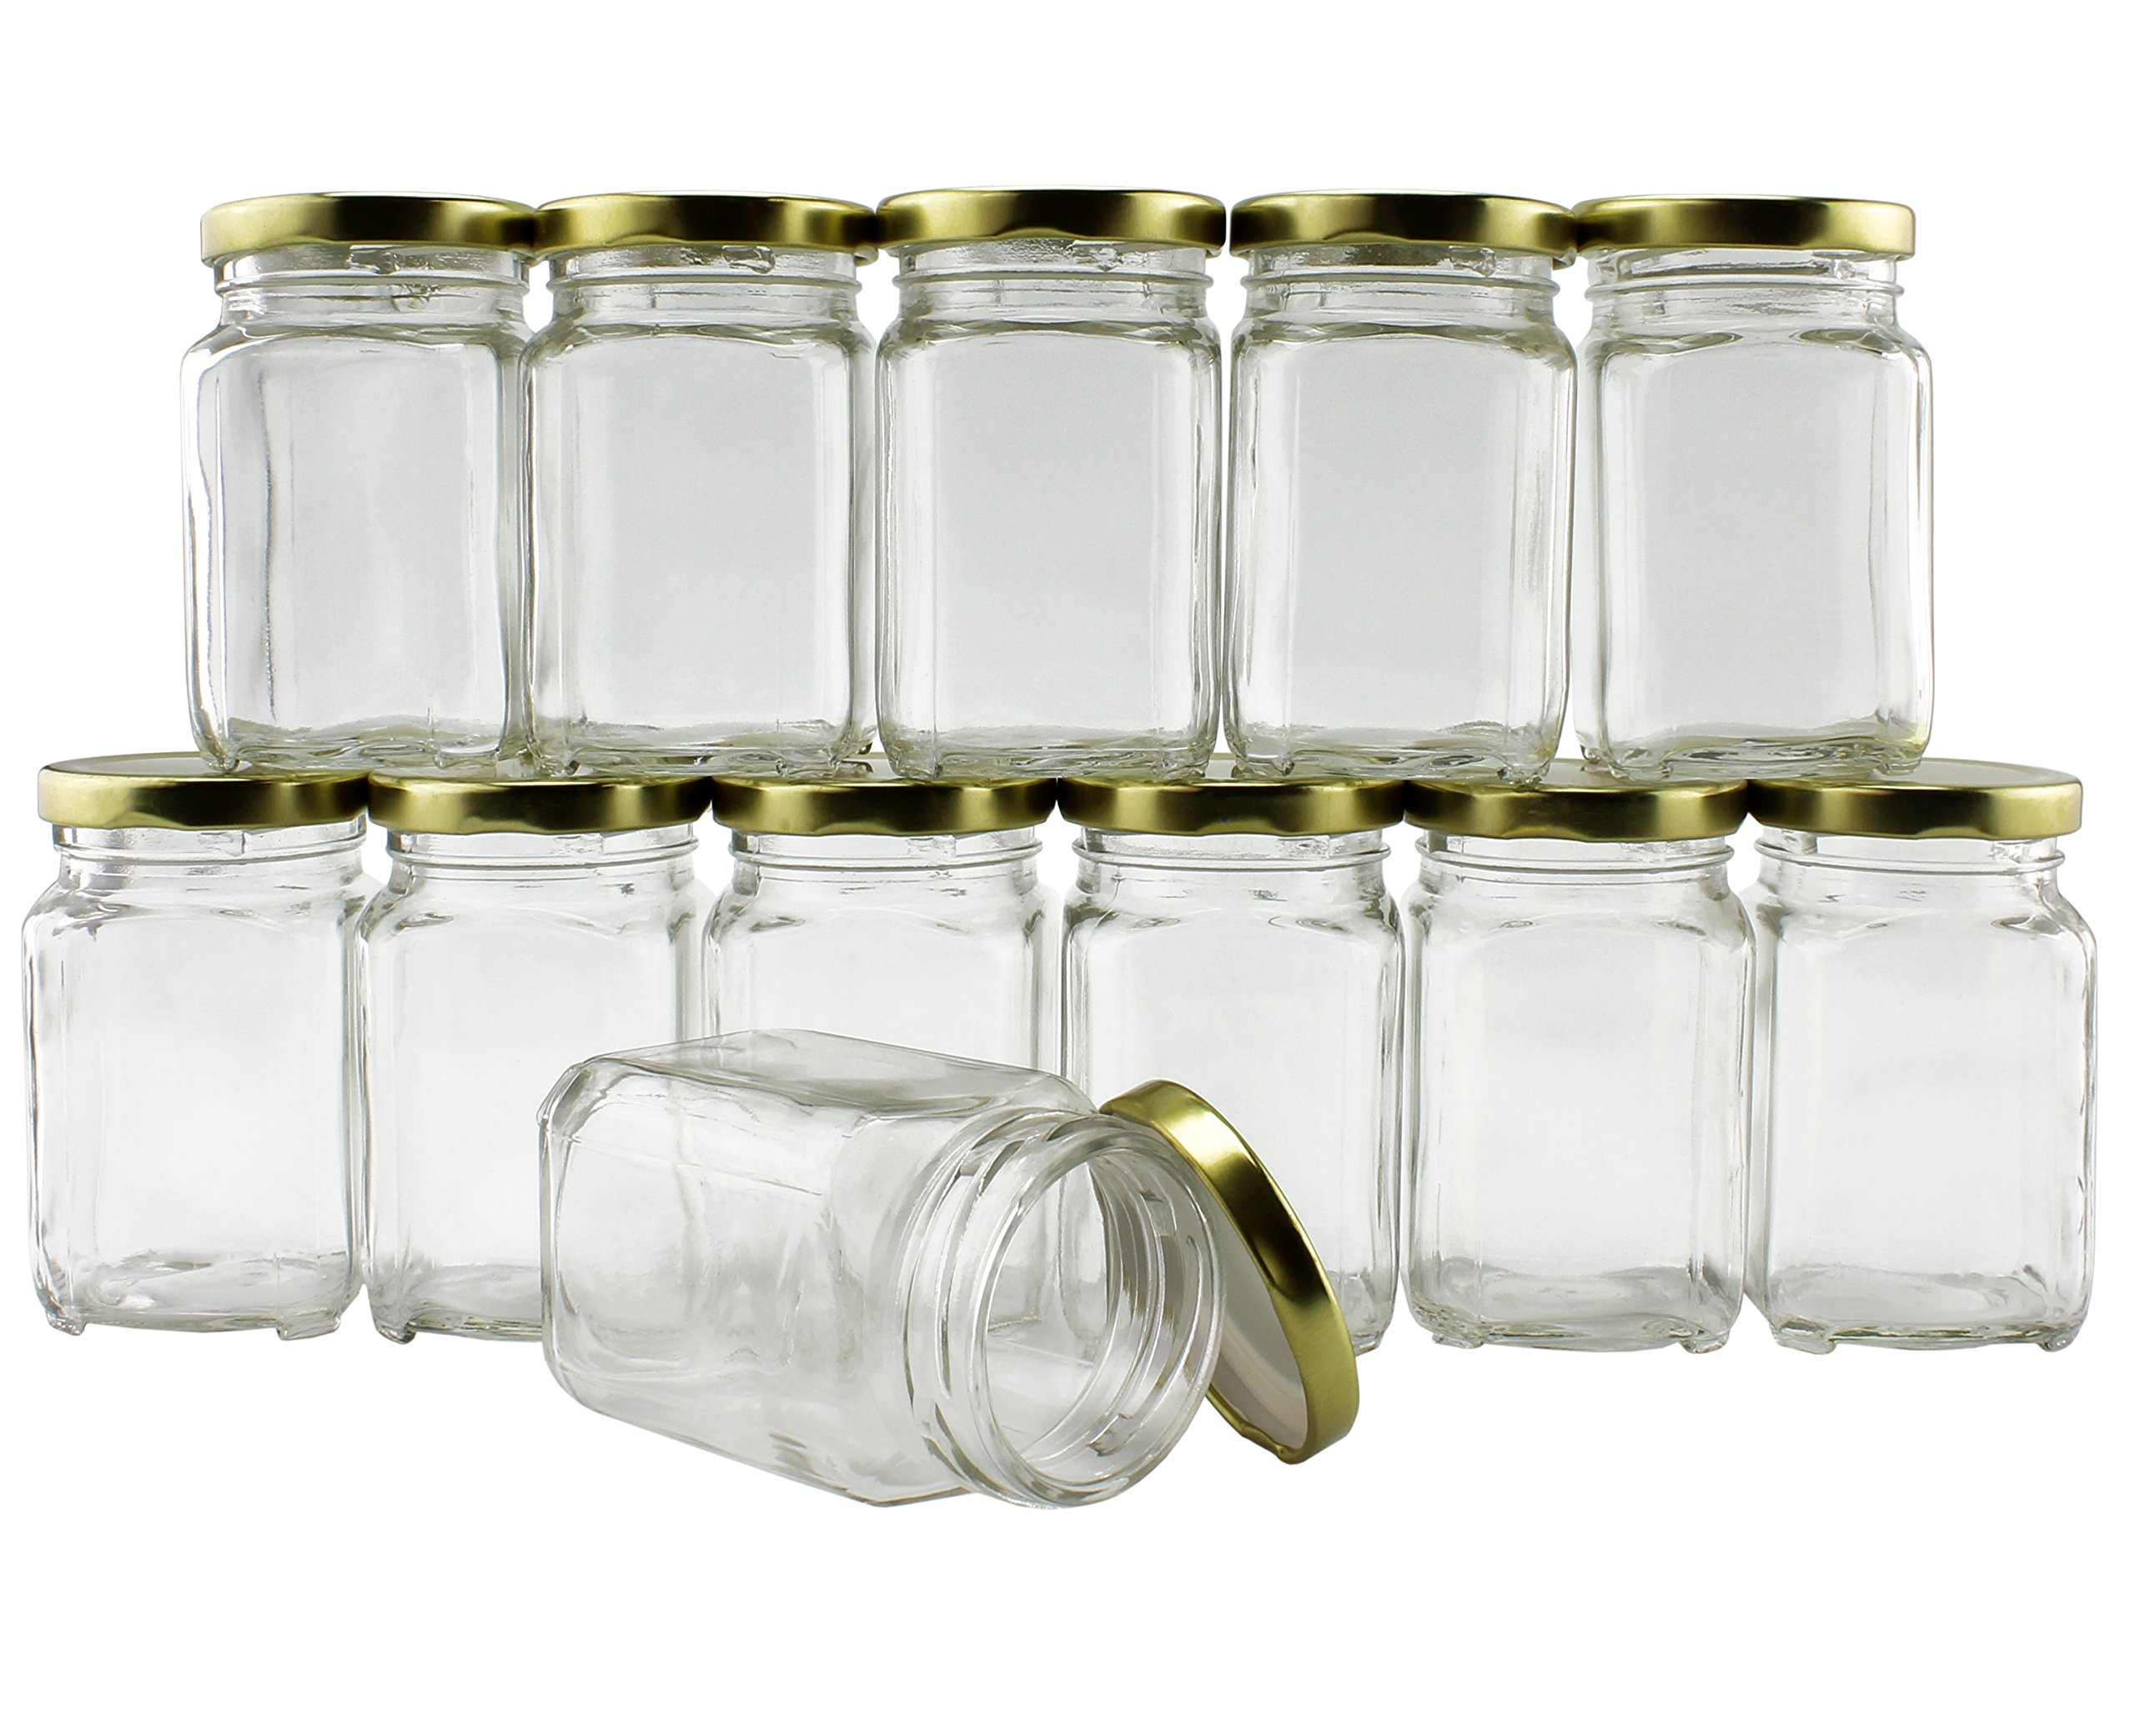 6-Ounce Square Victorian Jars (12-Pack), Candle Jars Pack of Steampunk Square Glass Jars with Screw-On Lids, Ideal for Spice Storage, Wedding and Party Favors, DIY Projects & More! (Set of 12) 3